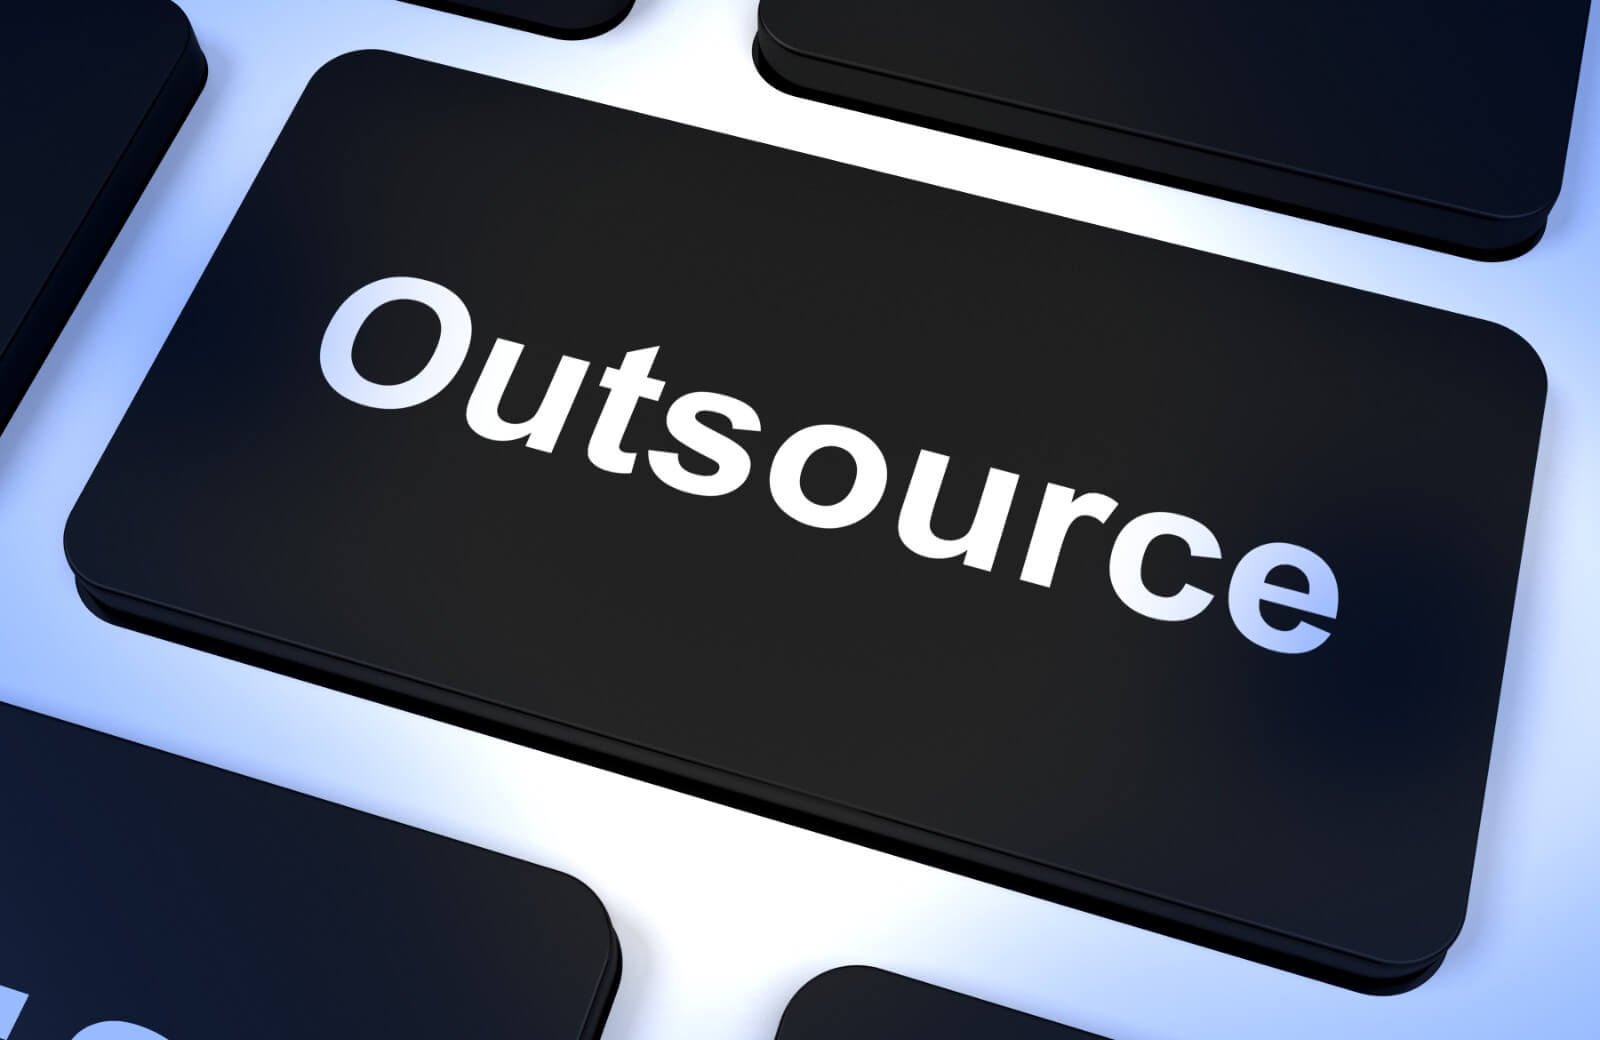 Outsourcing Officer As A Service